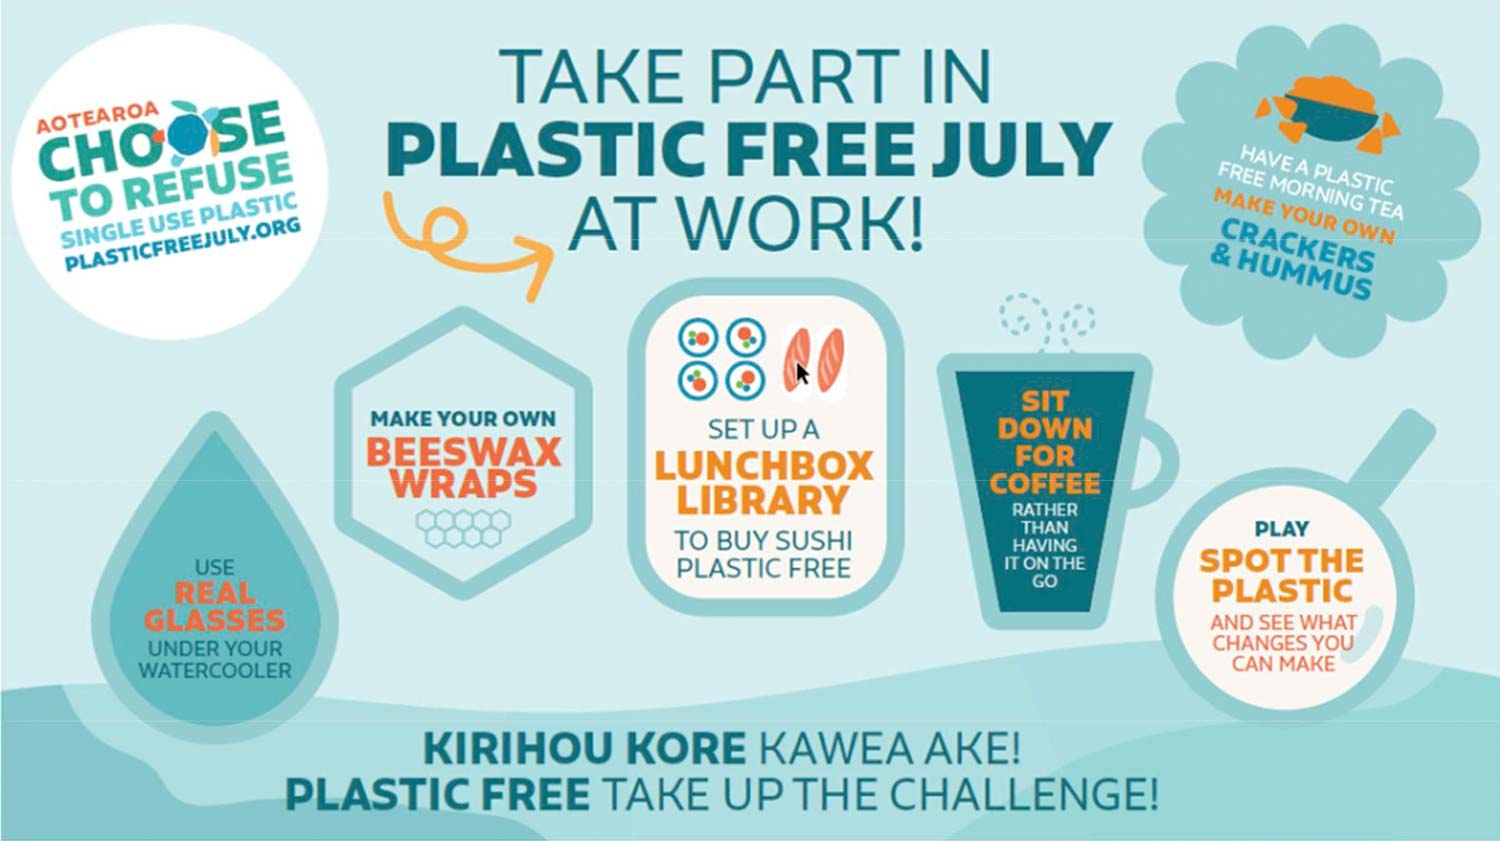 Plastic Free July - Ideas of what you can do at work.